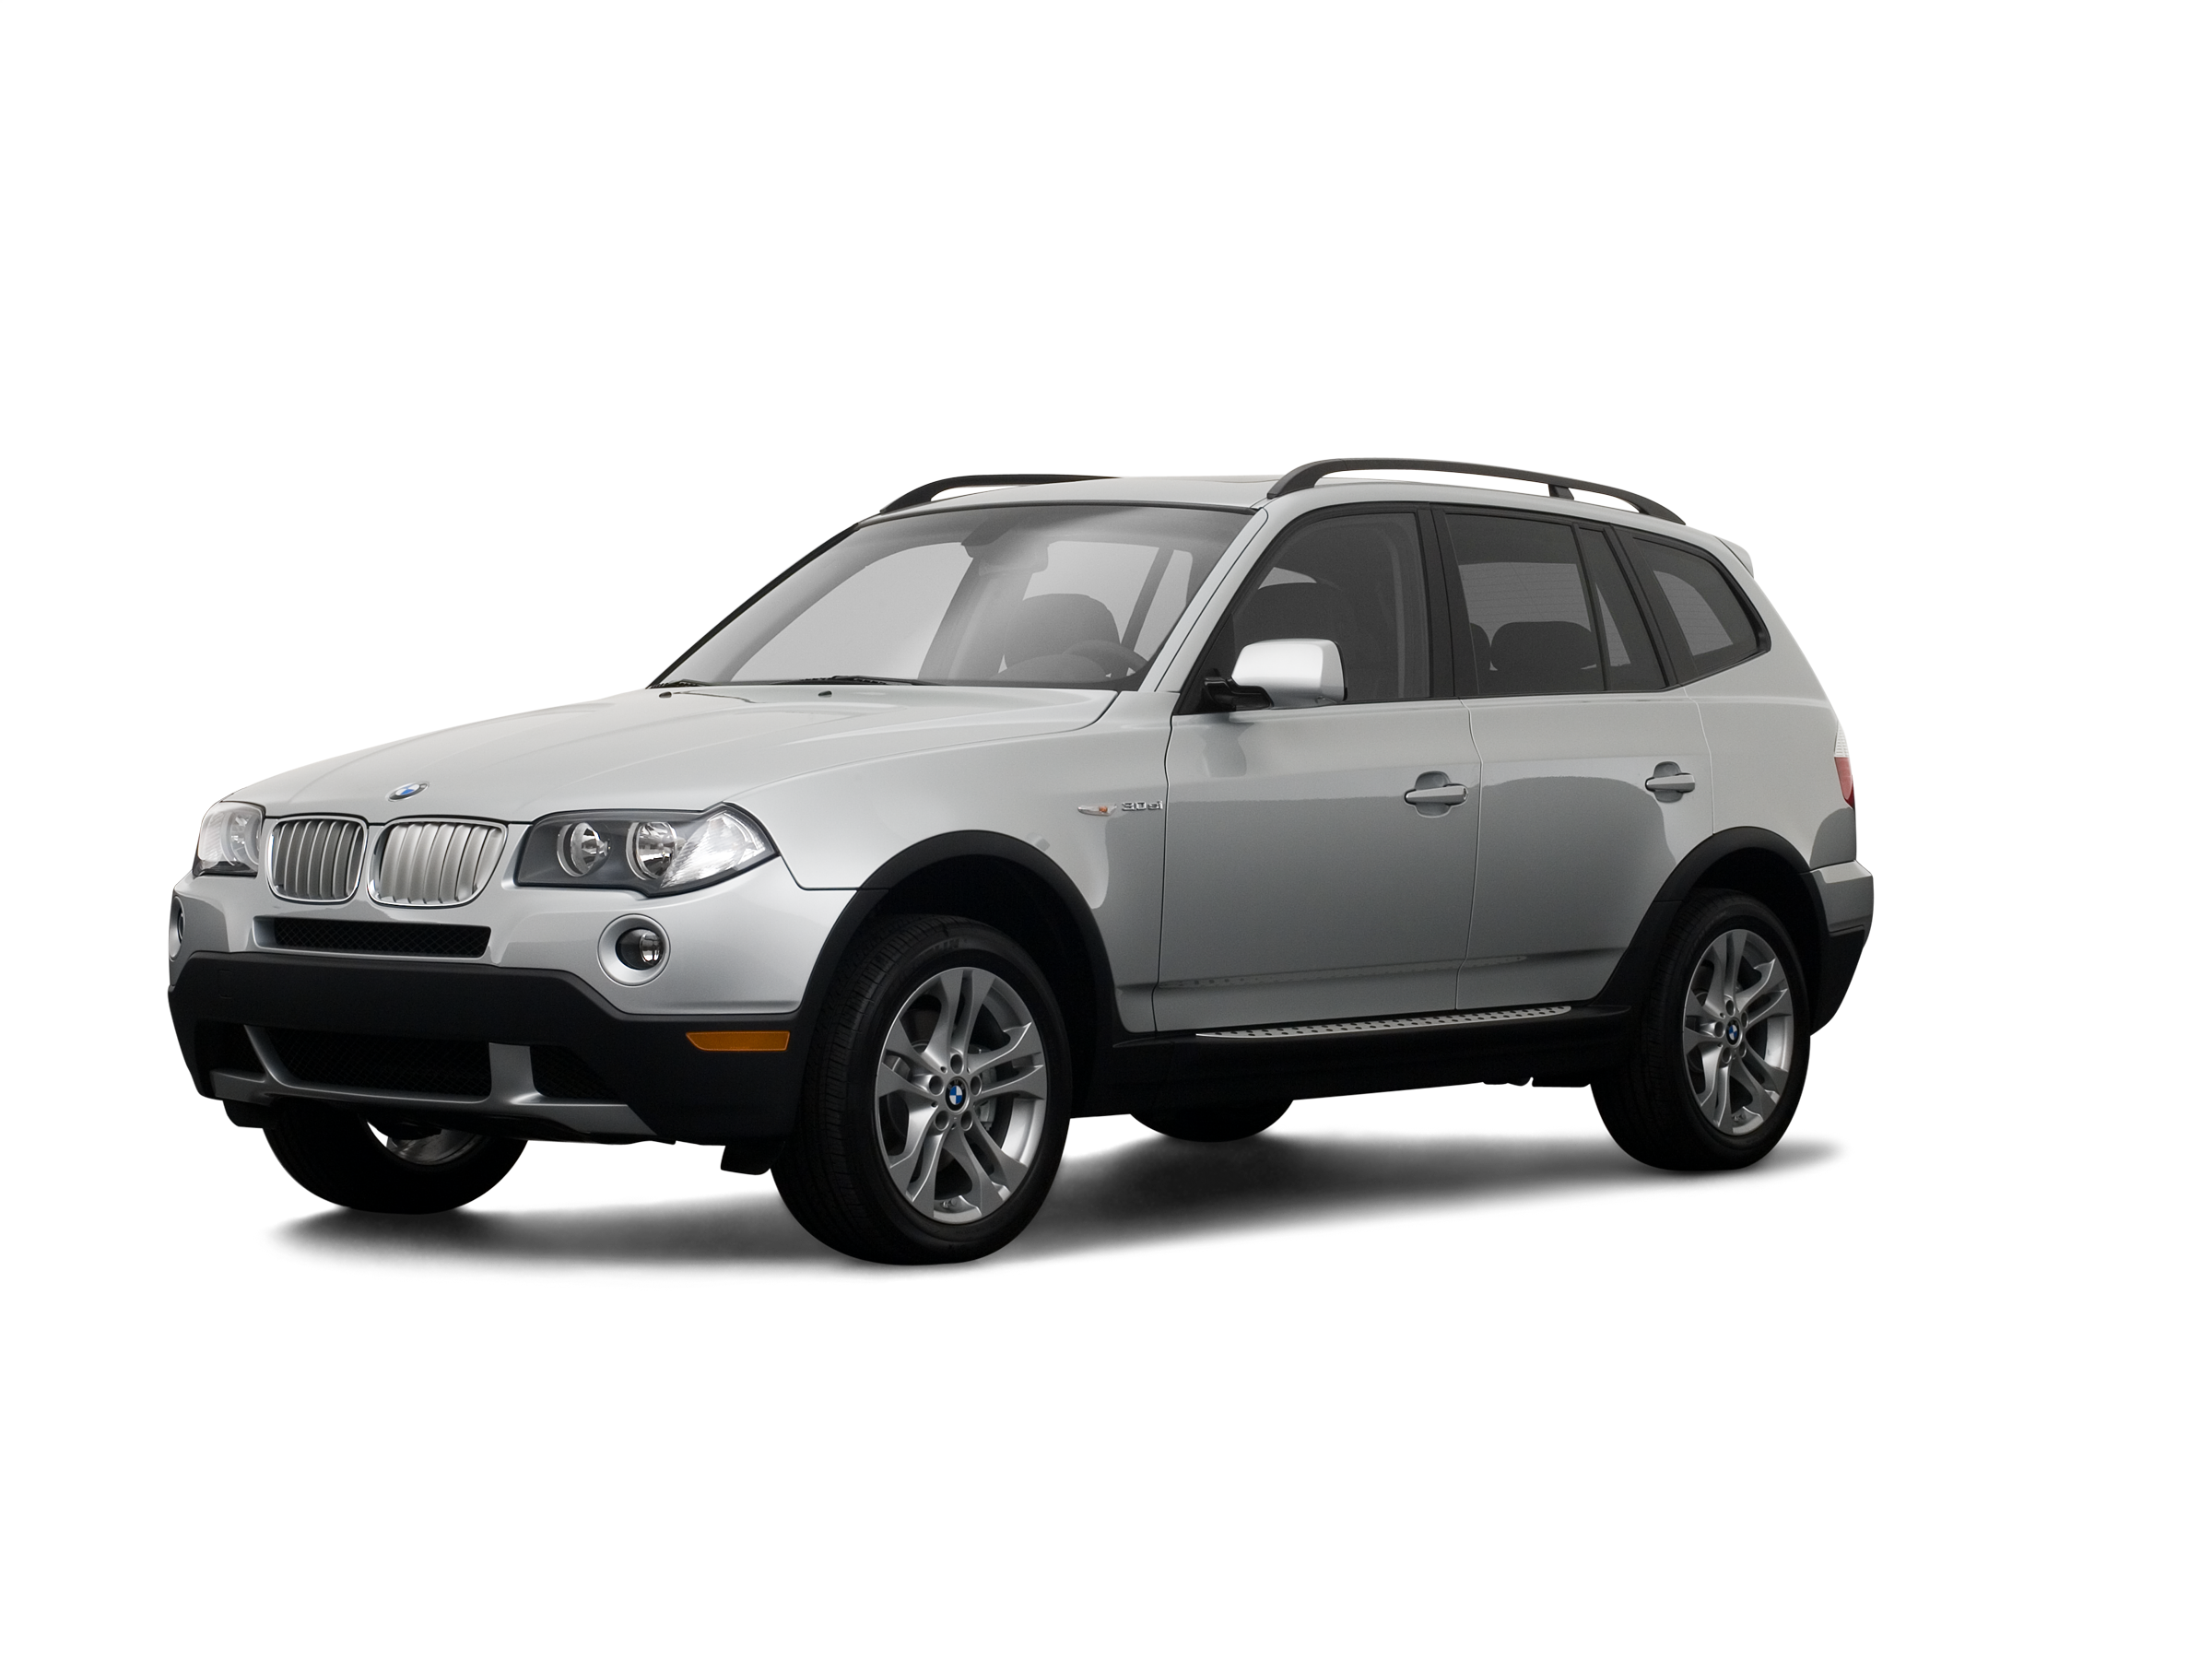 2008 Bmw X3 Values Cars For Sale Kelley Blue Book